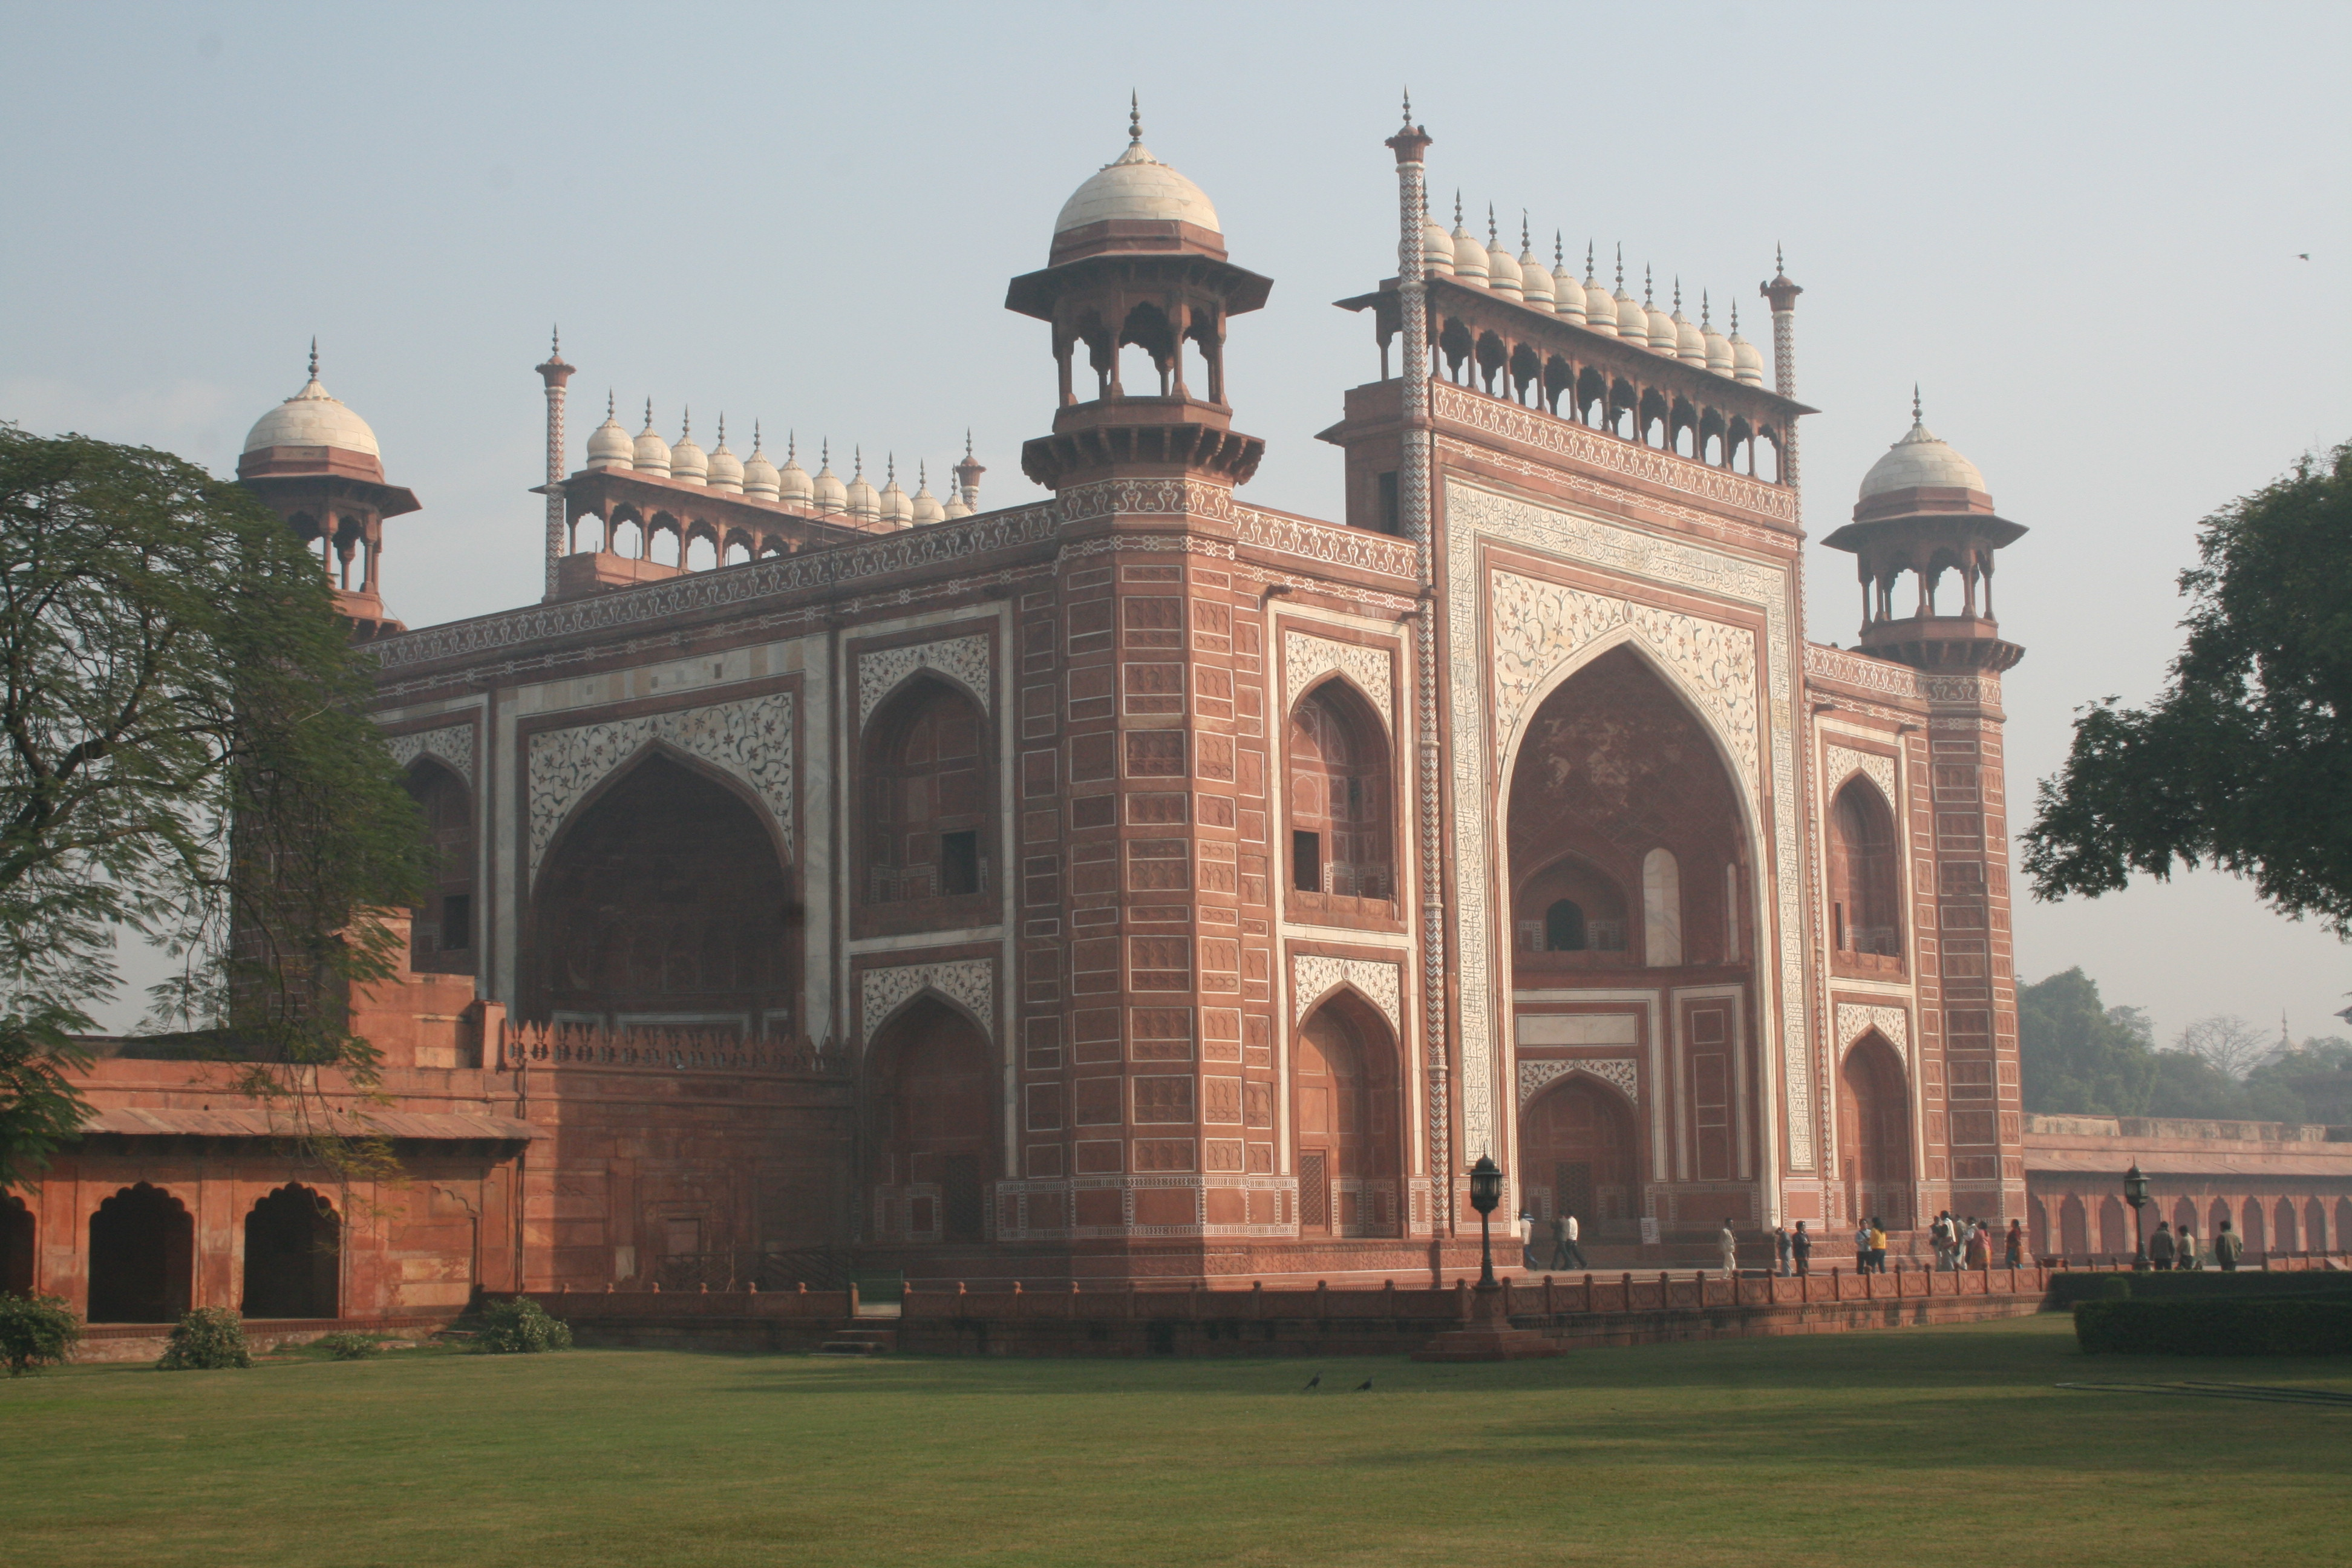 File:El Taj Mahal-Agra India0003.JPG - Wikimedia Commons